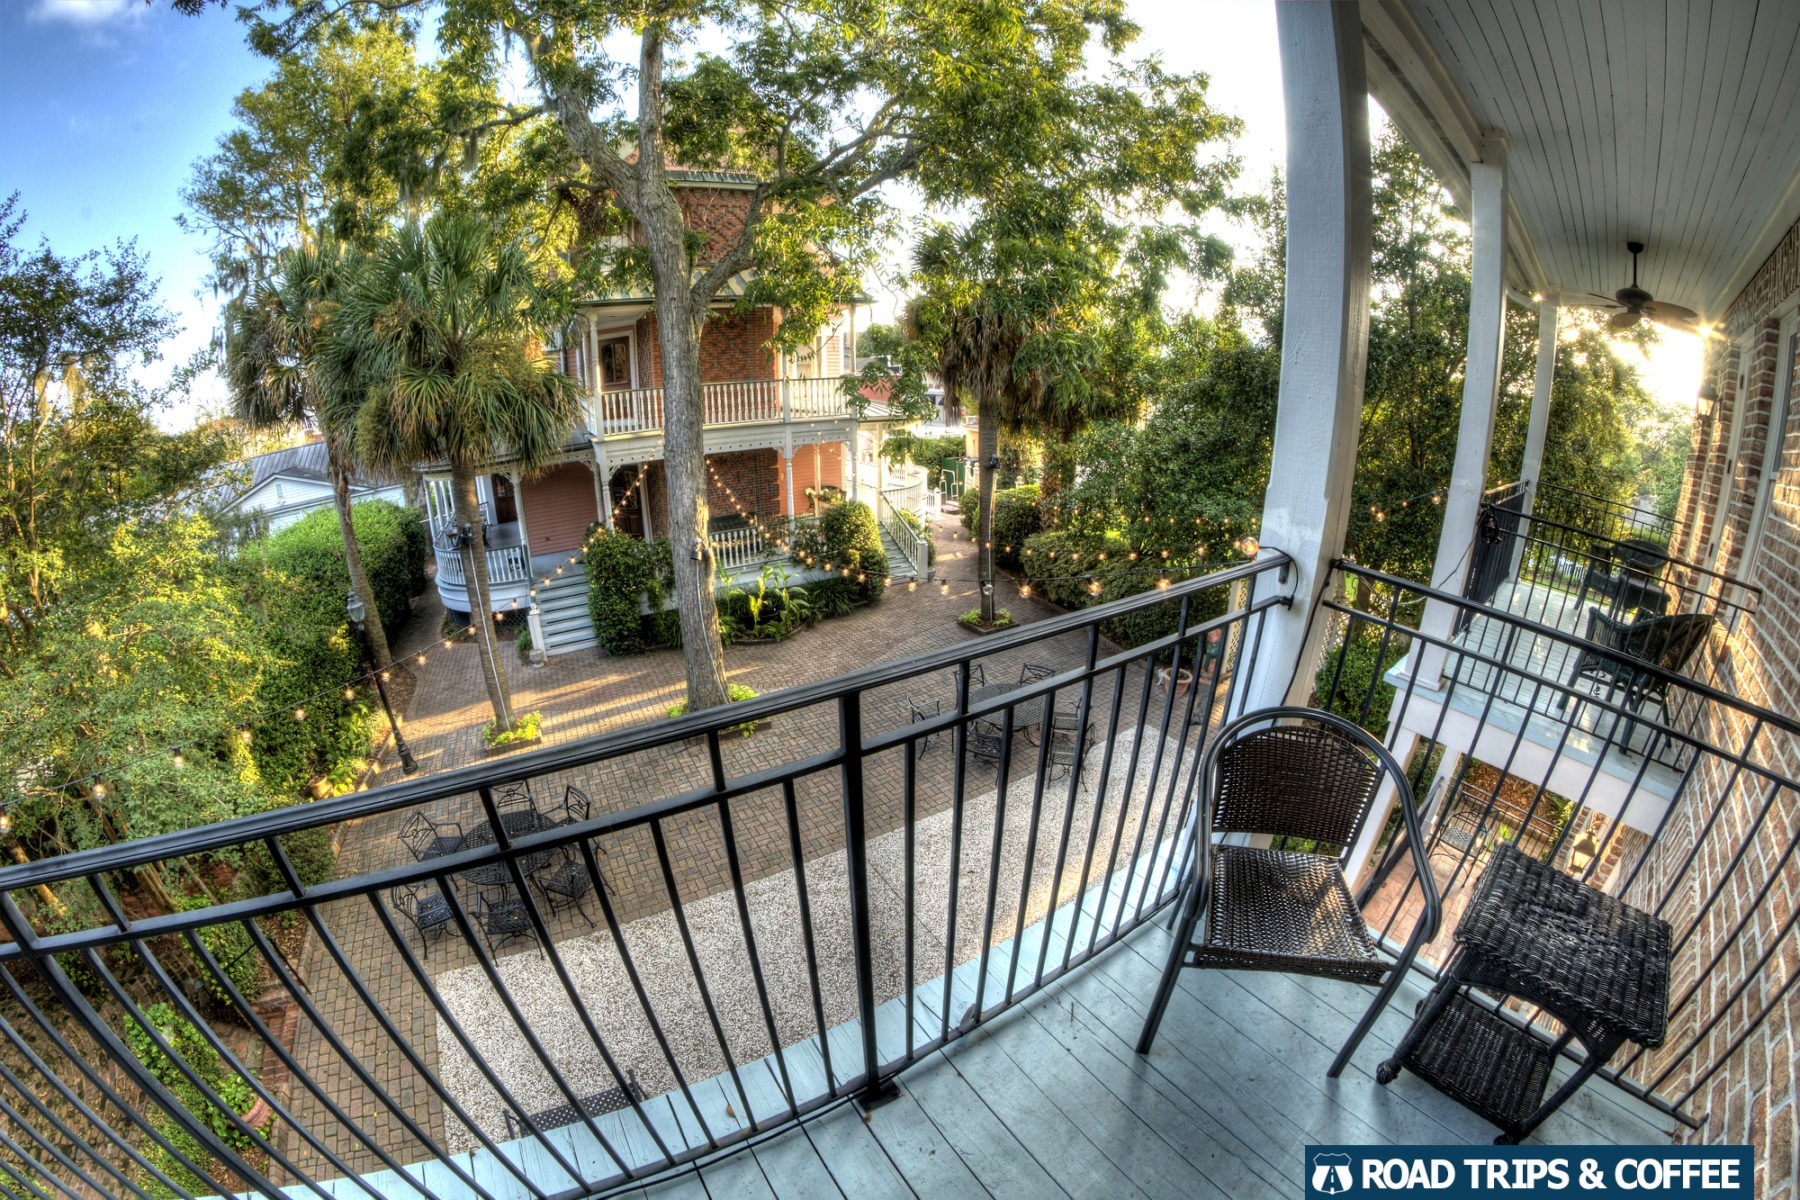 View from the second story balcony overlooking an inner courthyard at the Beaufort Inn in Beaufort, South Carolina